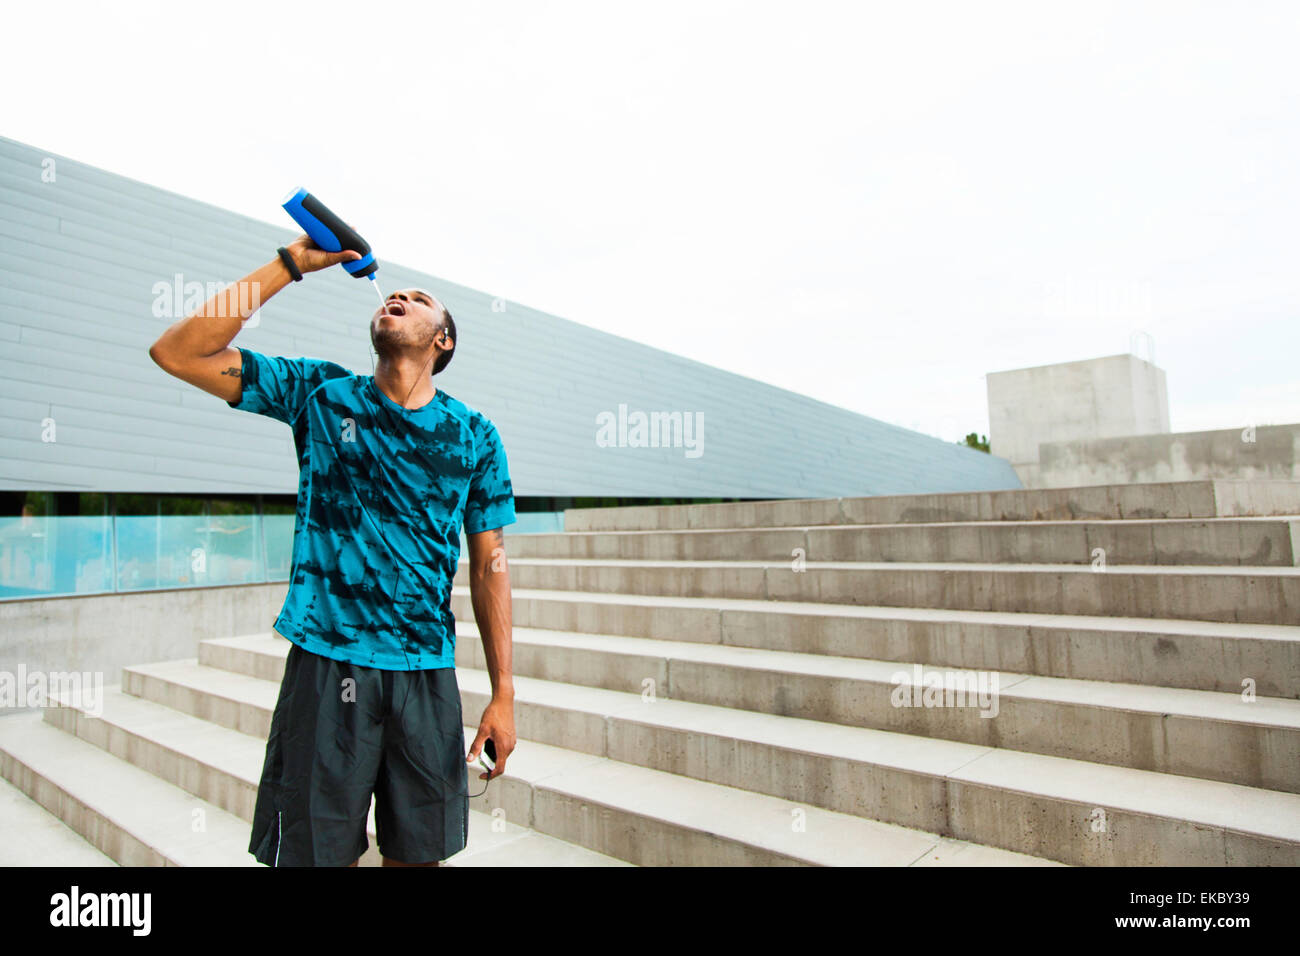 Young male runner drinking water on city steps - Stock Image